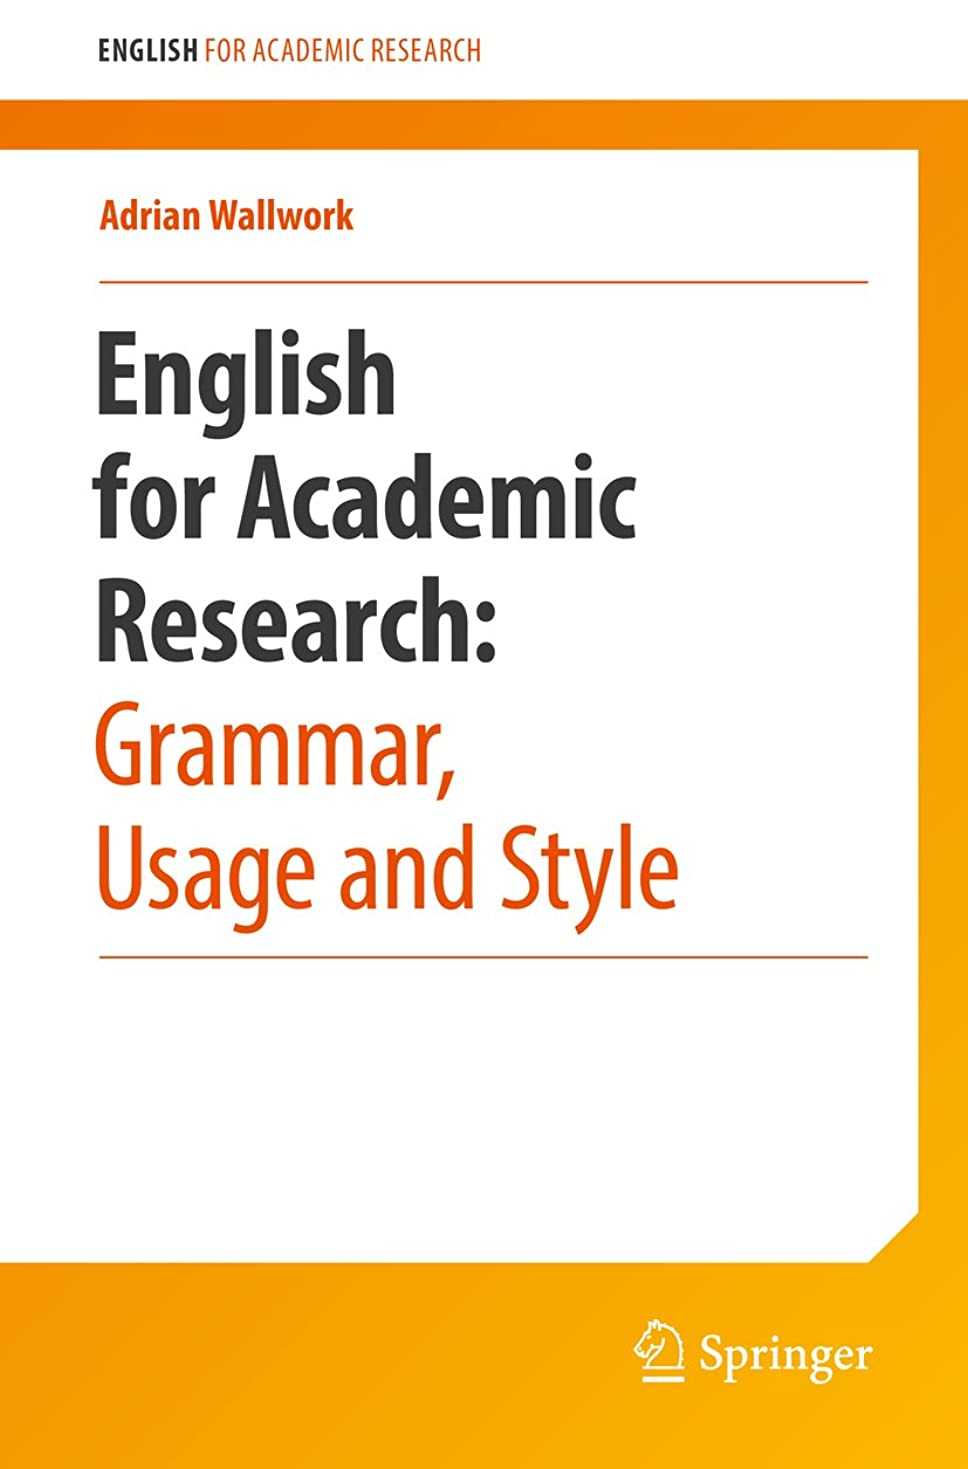 悔い改めショルダースキニーEnglish for Academic Research: Grammar, Usage and Style (English Edition)